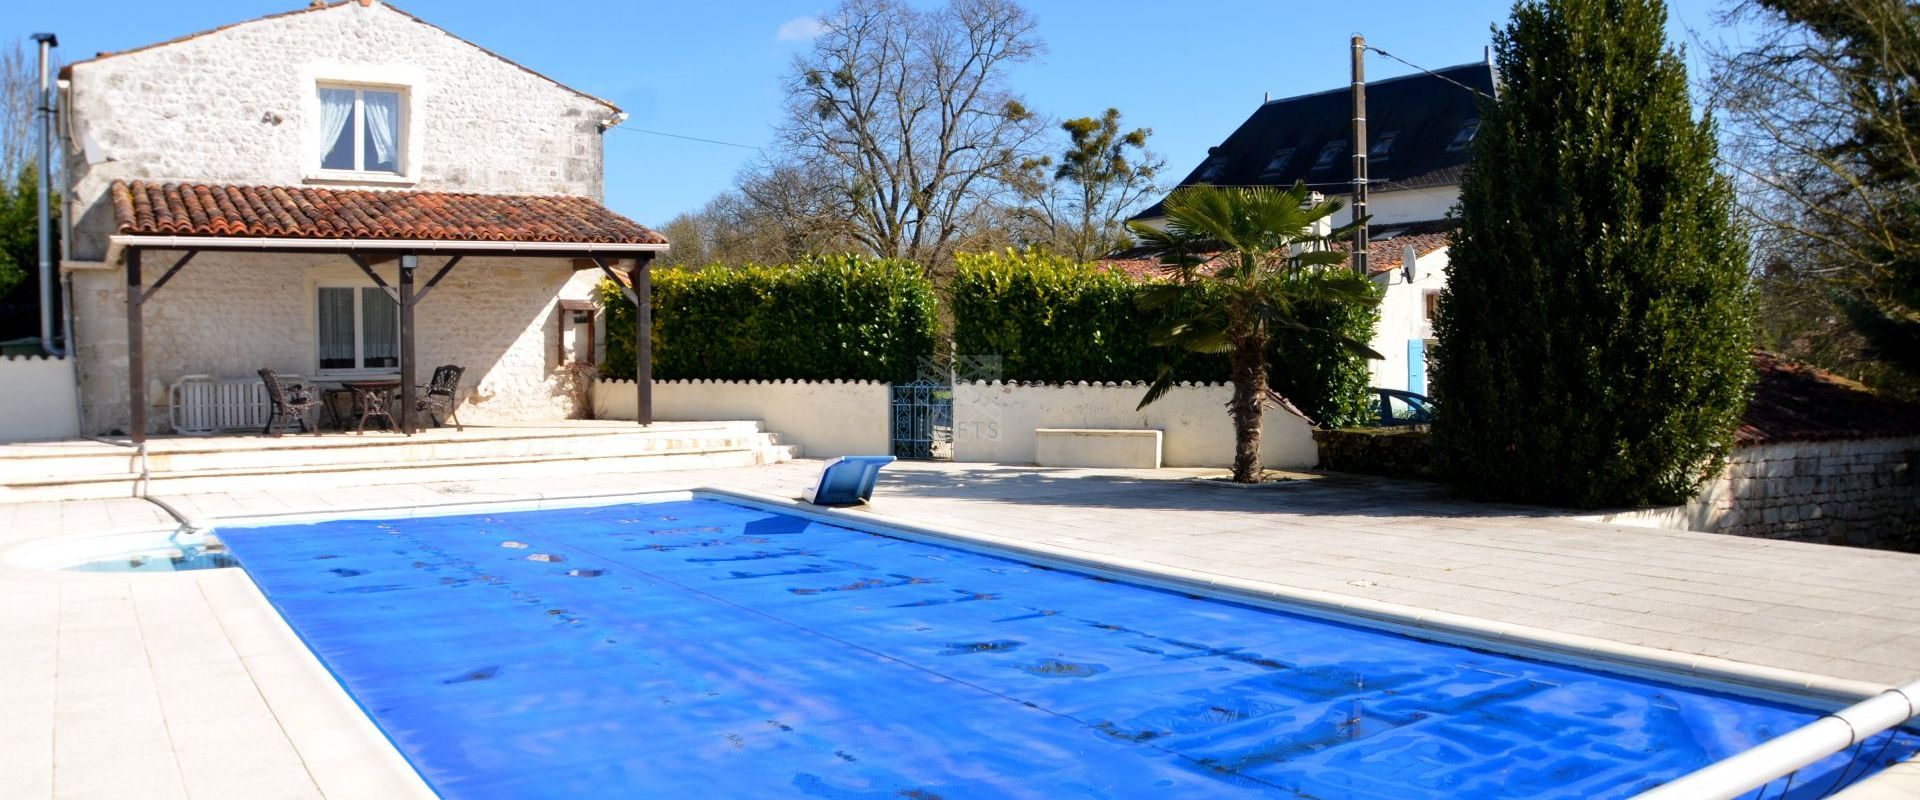 covered outdoor swimming pool property Royan